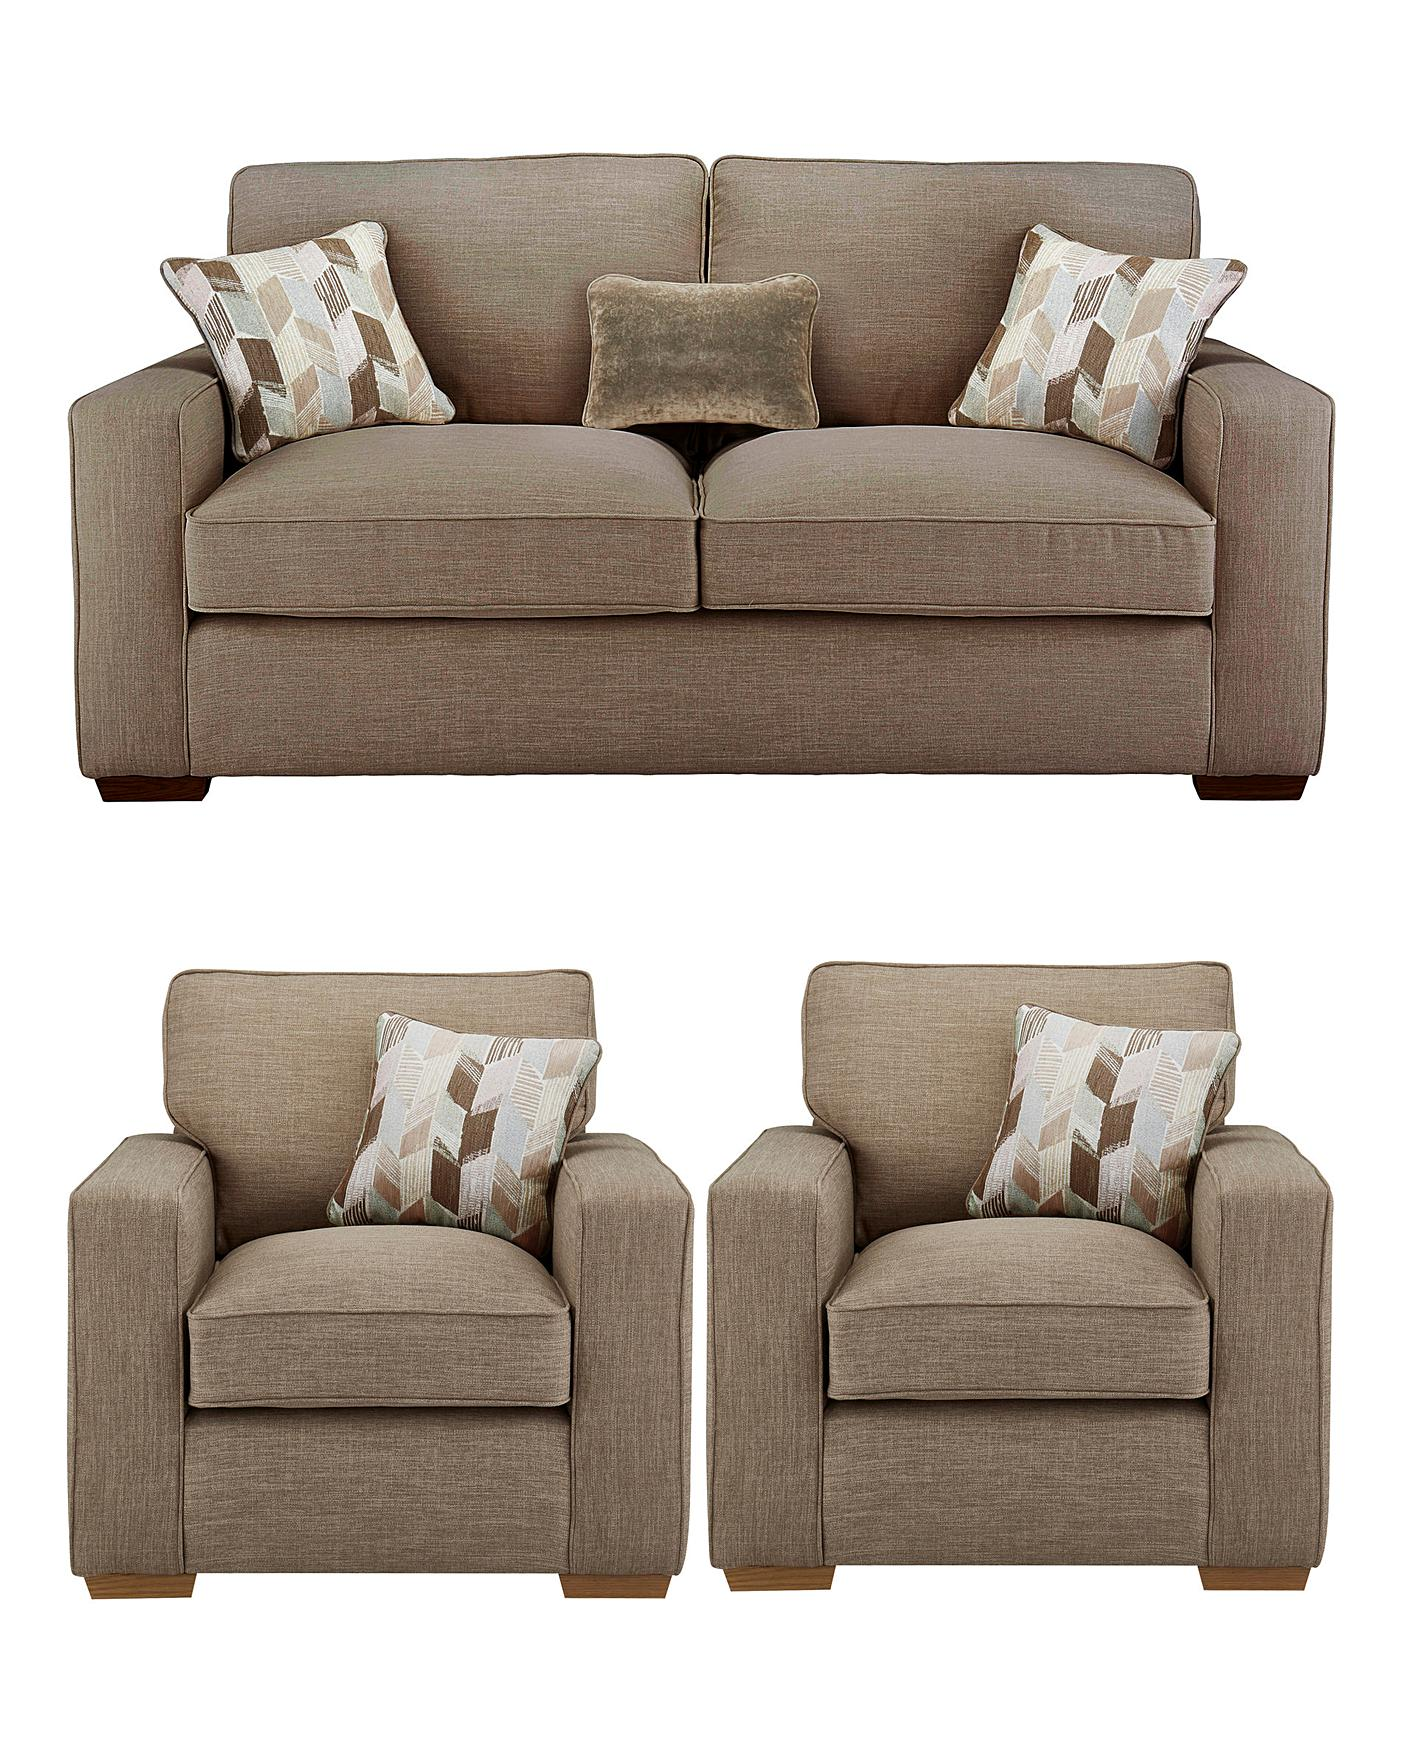 3 Seater Sofa And 2 Chairs - wood chair